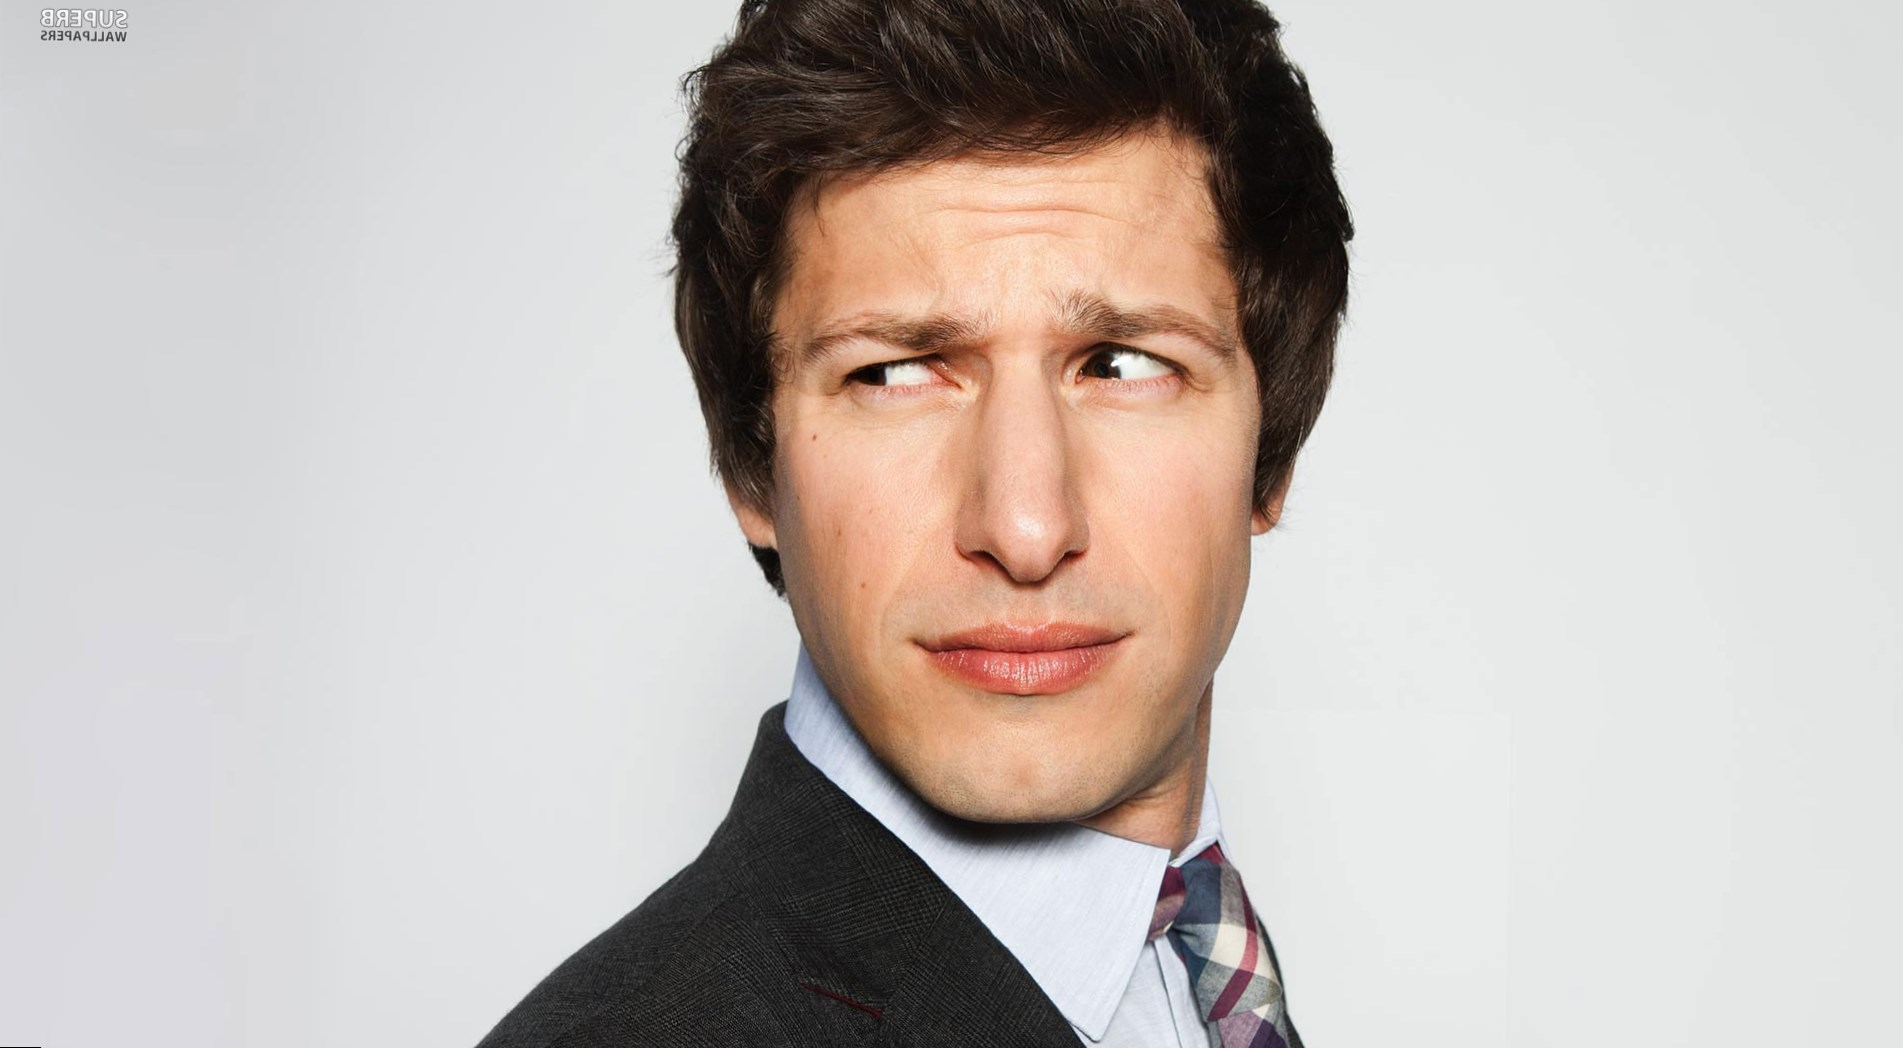 Andy Samberg Height, Weight, Age and Body Measurements